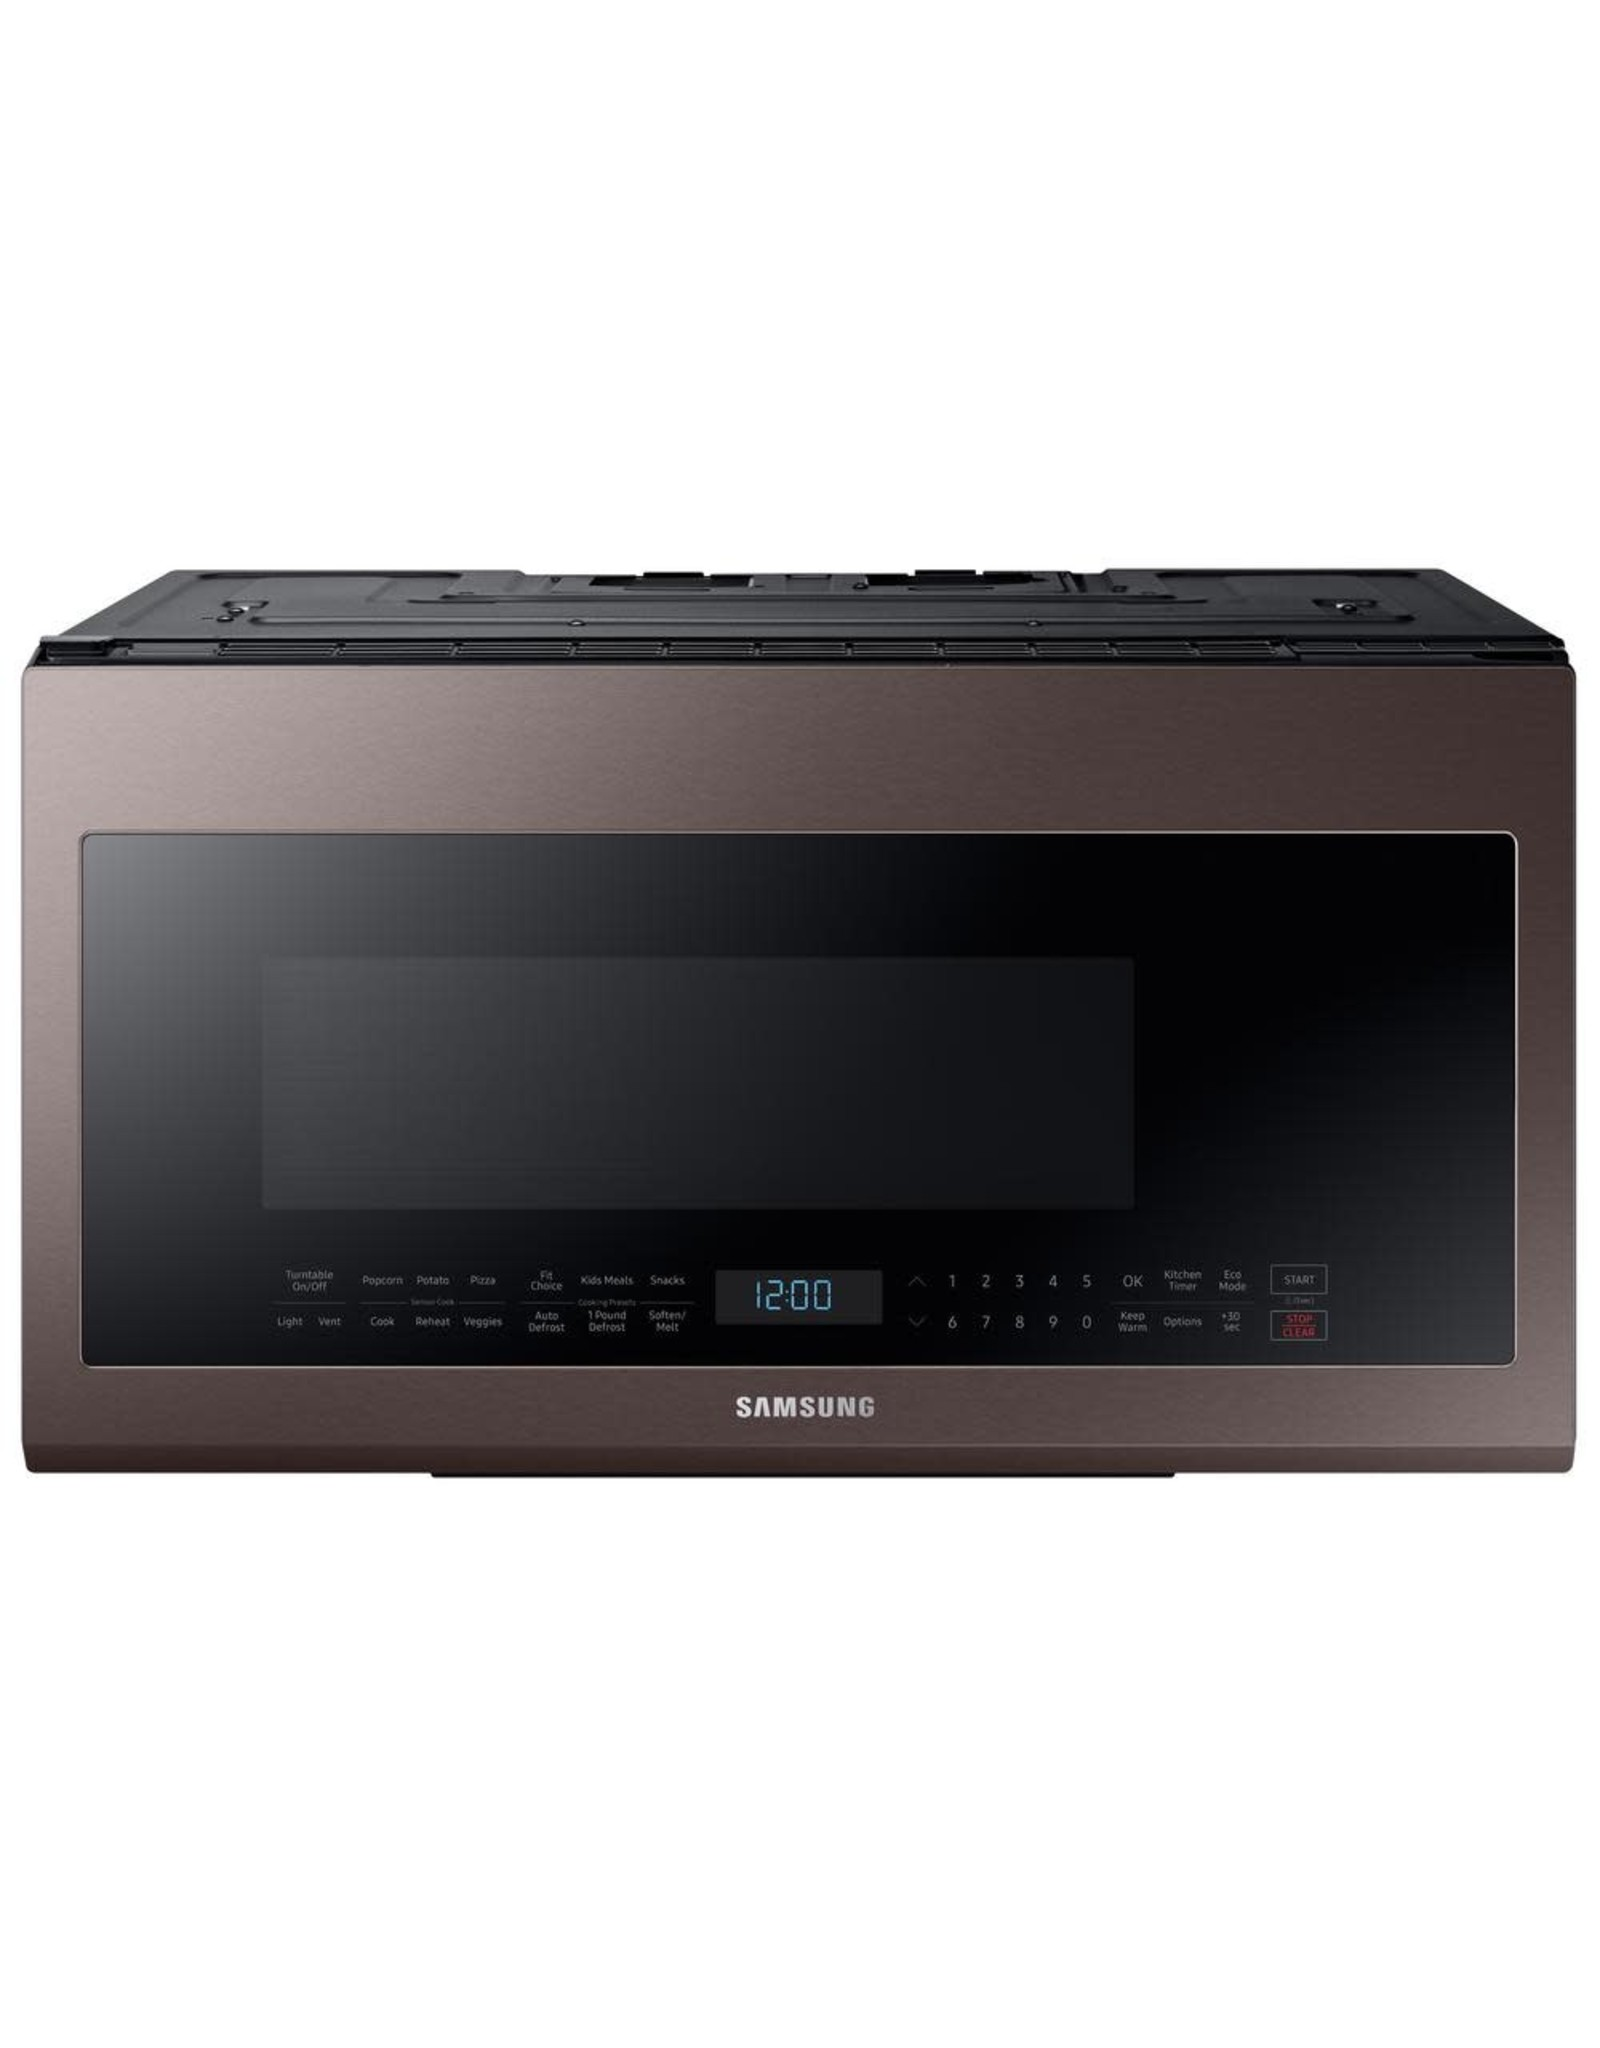 samsung me21r706bat samsung 30 in w 2 1 cu ft over the range microwave in fingerprint resistant tuscan stainless steel with sensor cooking